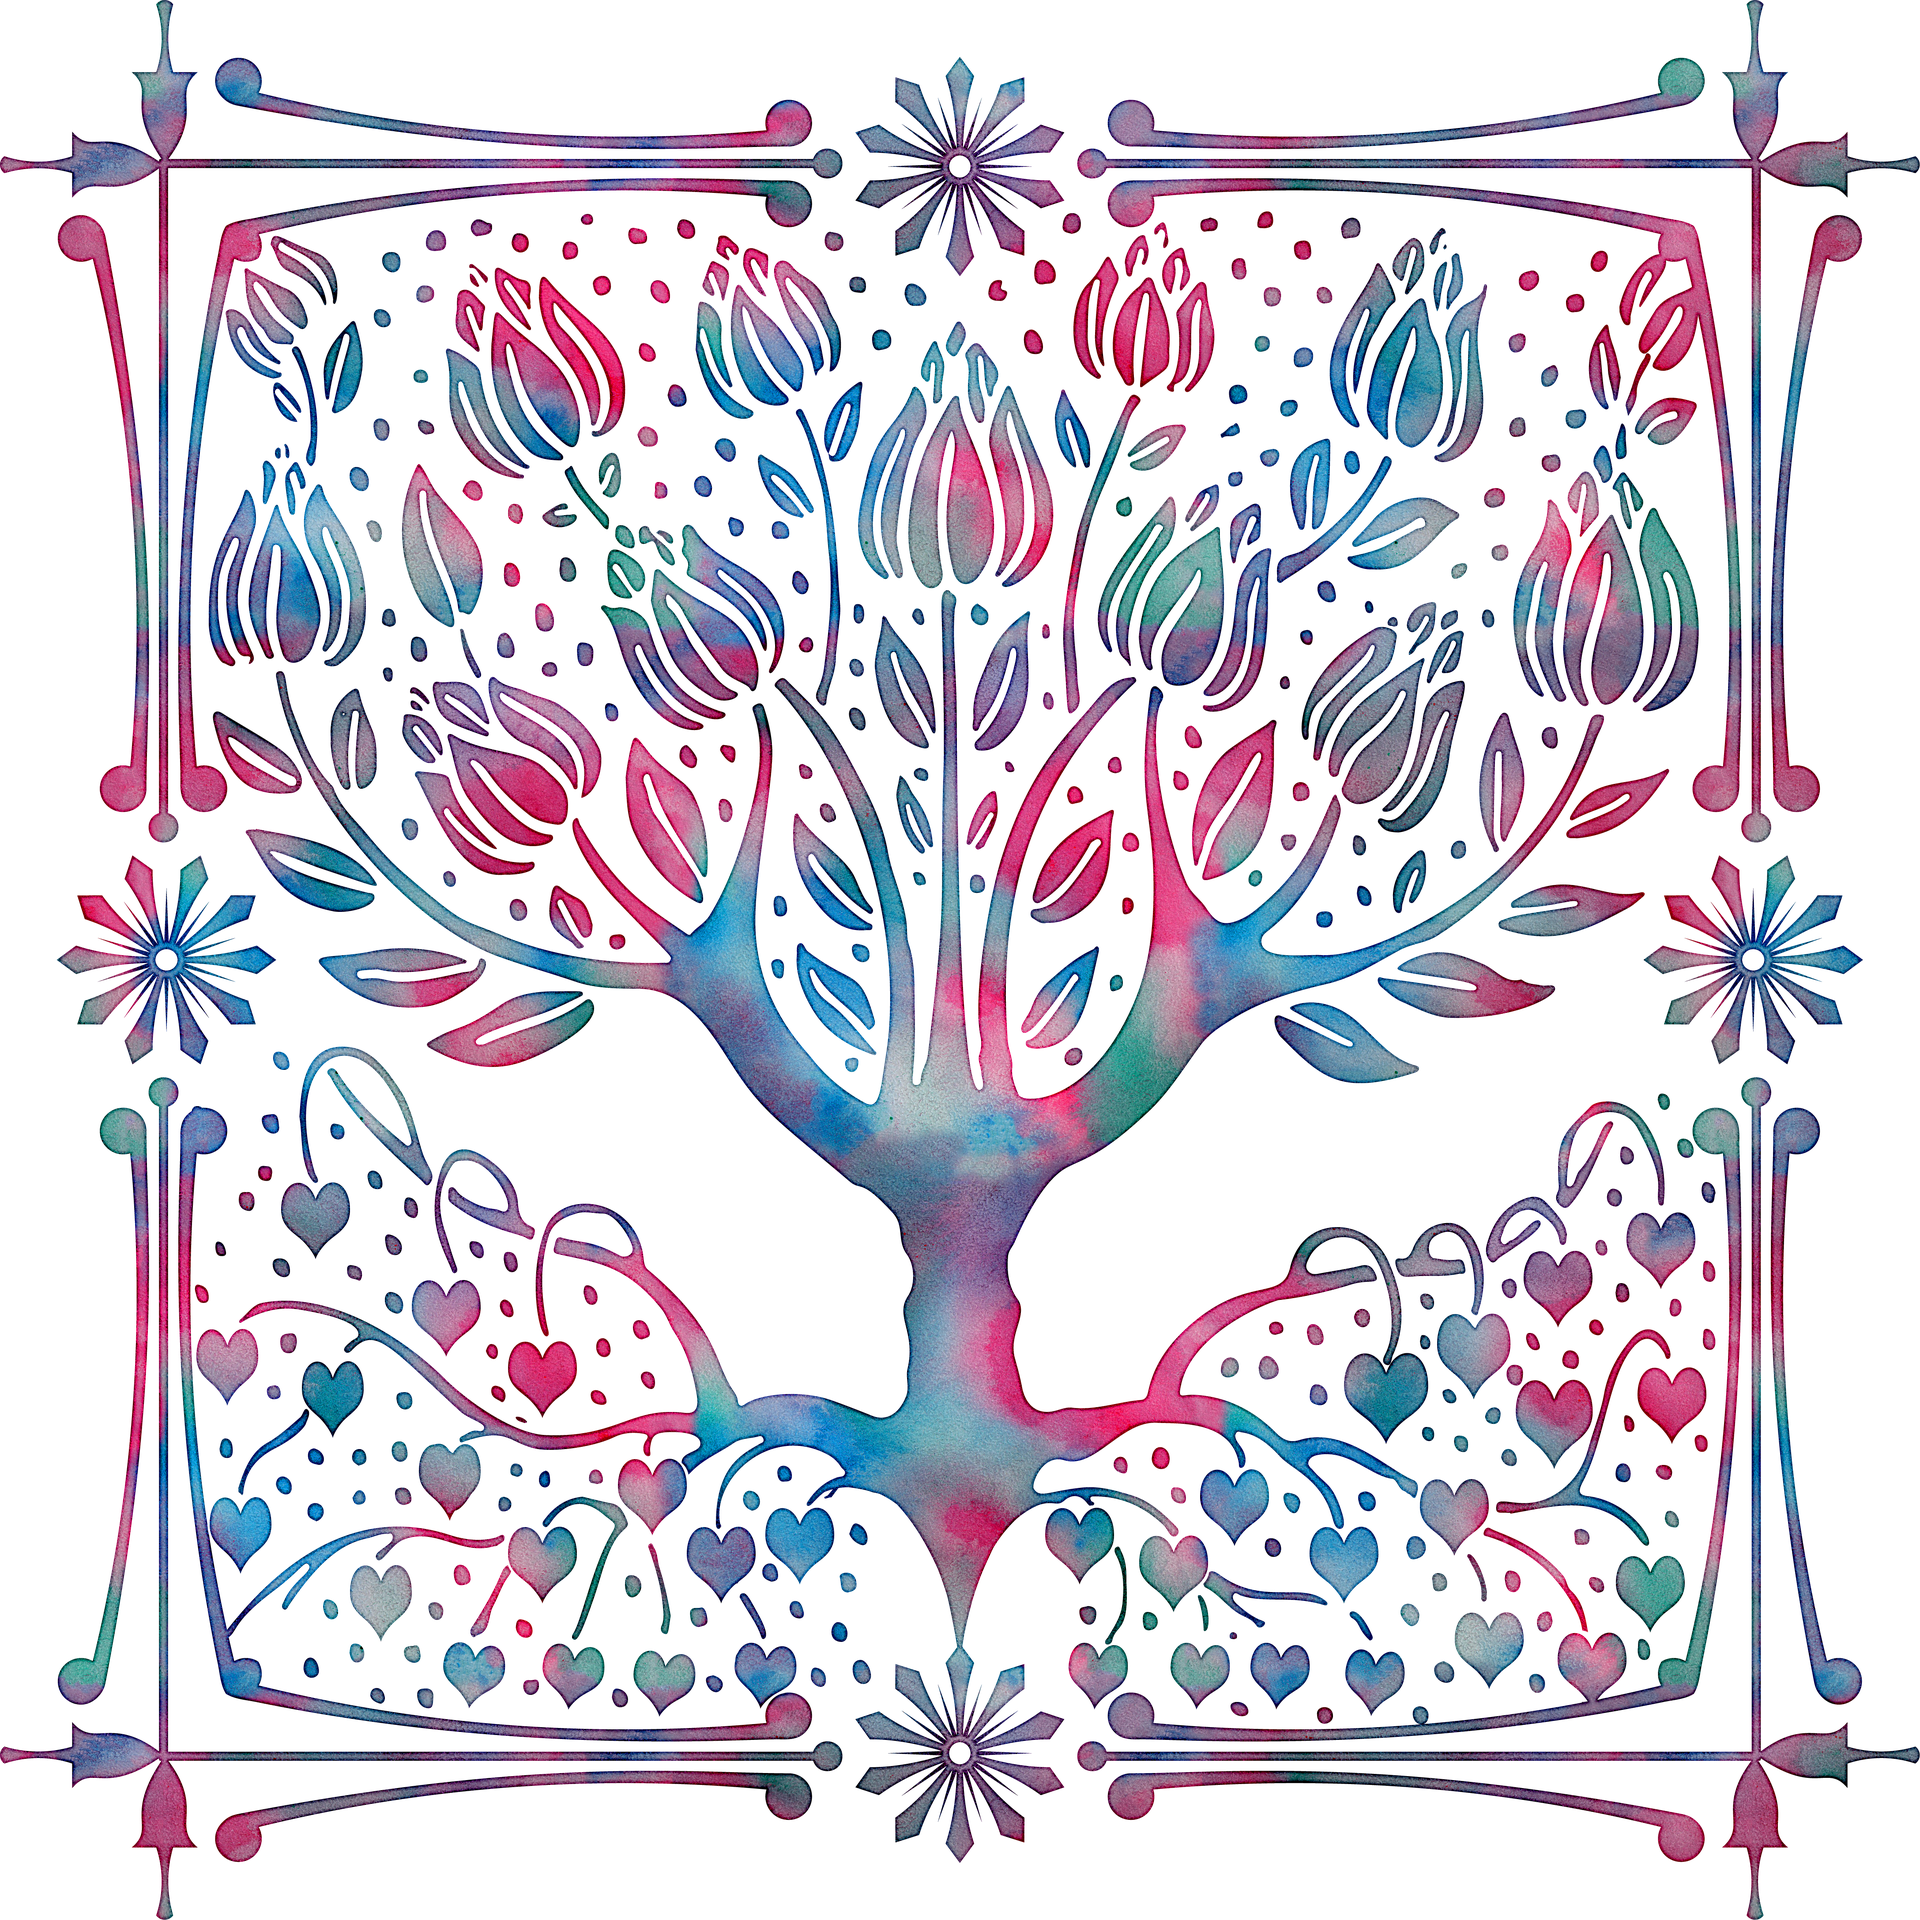 watercolor-tree-of-life-5312159_1920